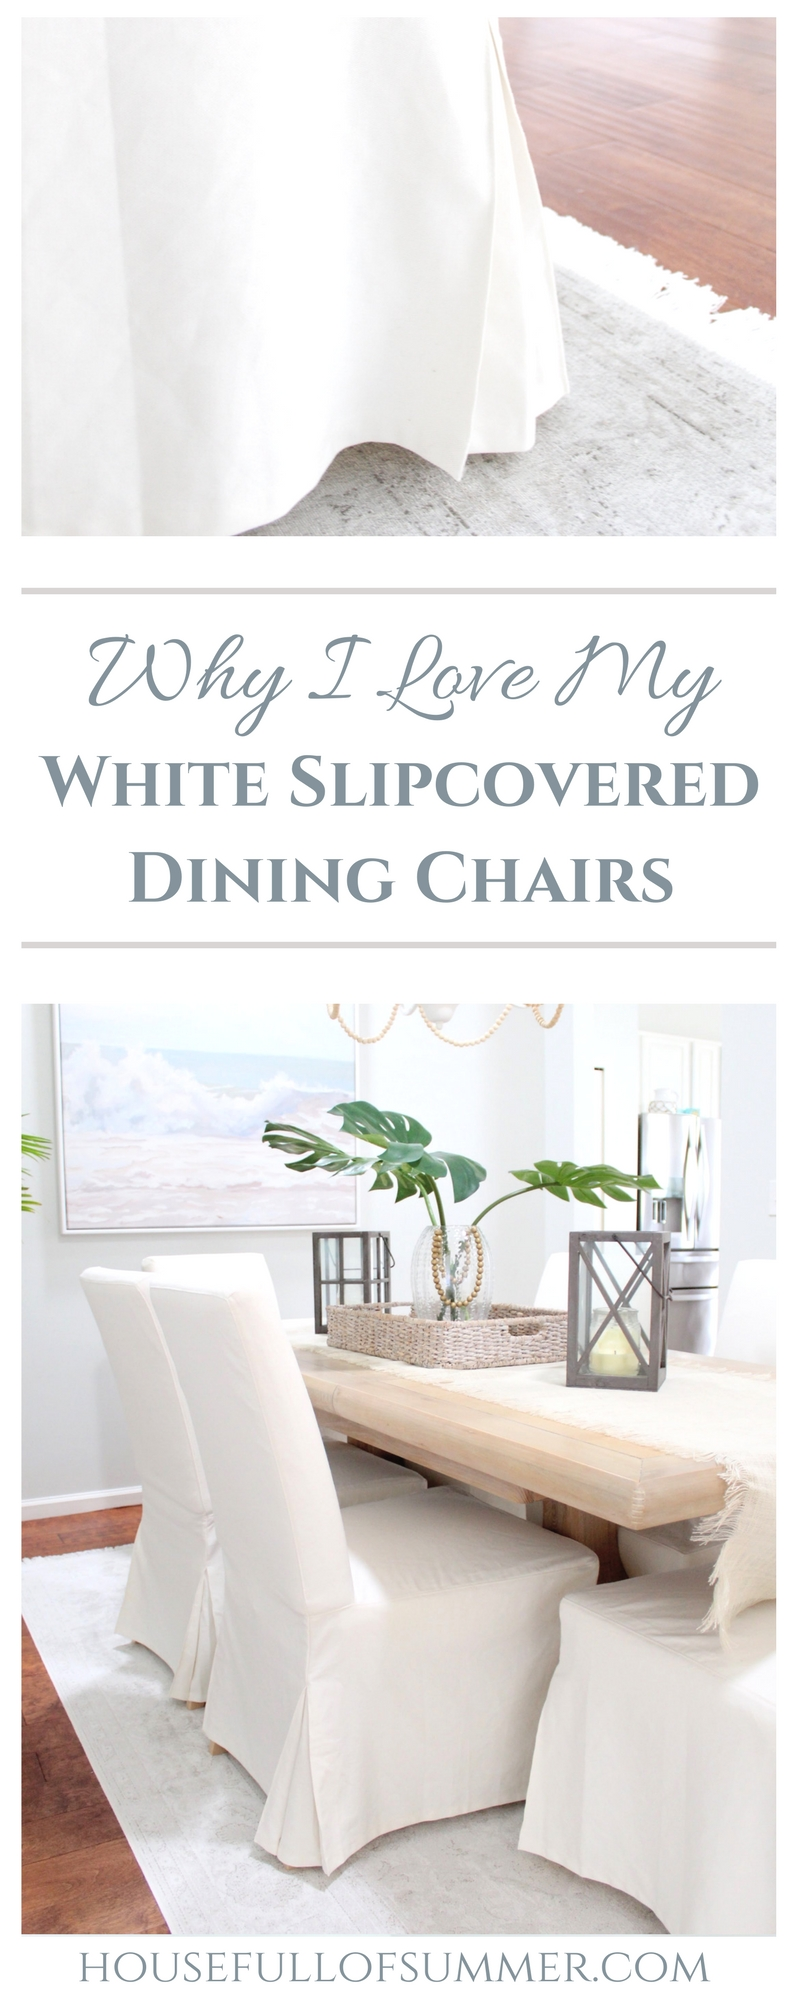 Why I Love My White Slipcovered Dining Chairs! | House Full of Summer - These IKEA chairs are the best bang for your buck and super comfortable! I'm telling you everything you need to know about them! Coastal dining room decor, faded fringe rug, vintage look rug, home decor on a budget, get the look for less, beachy boho dining room, tropical style, beaded chandelier DIY, palm fronds, ocean beach wall art, review of IKEA furniture